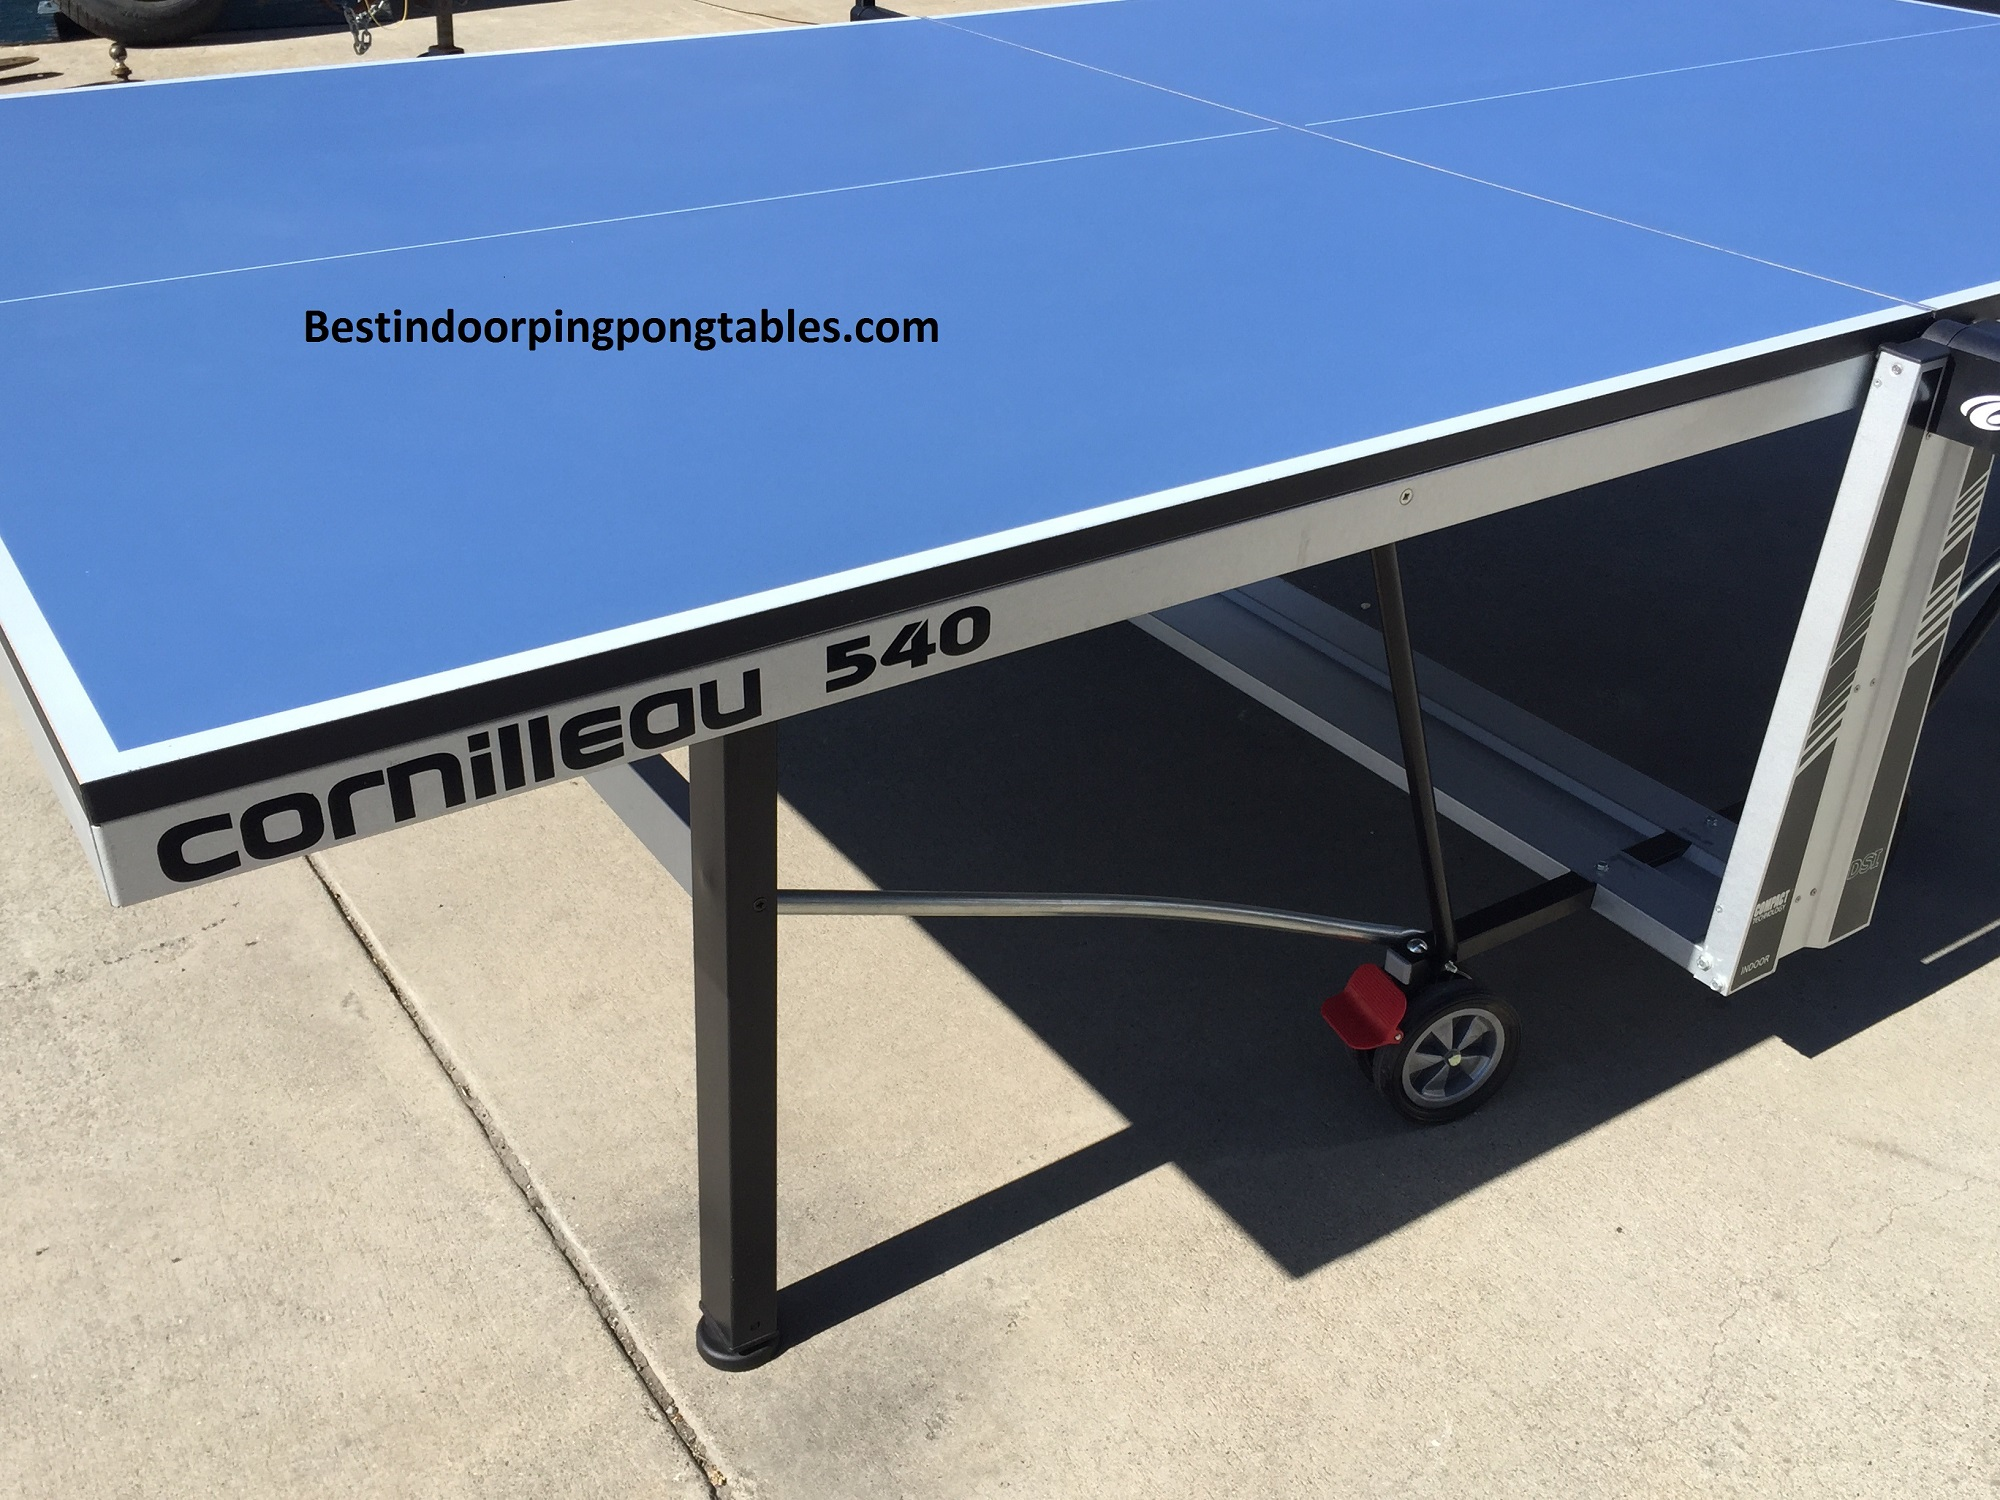 Cornilleau 540 indoor - Table ping pong cornilleau outdoor occasion ...